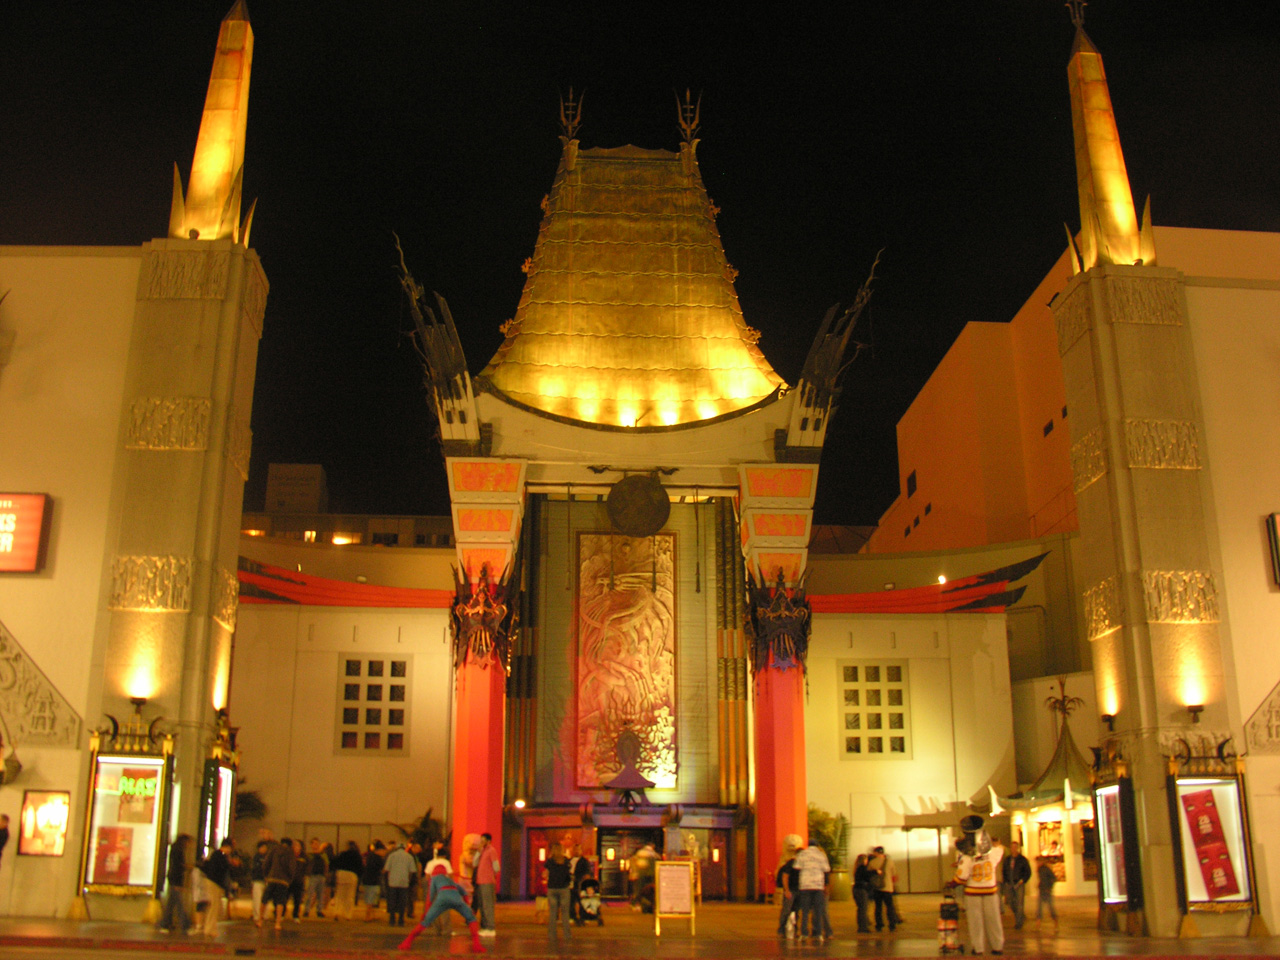 Grauman's Chinese Theatre (note Spiderman in foreground)